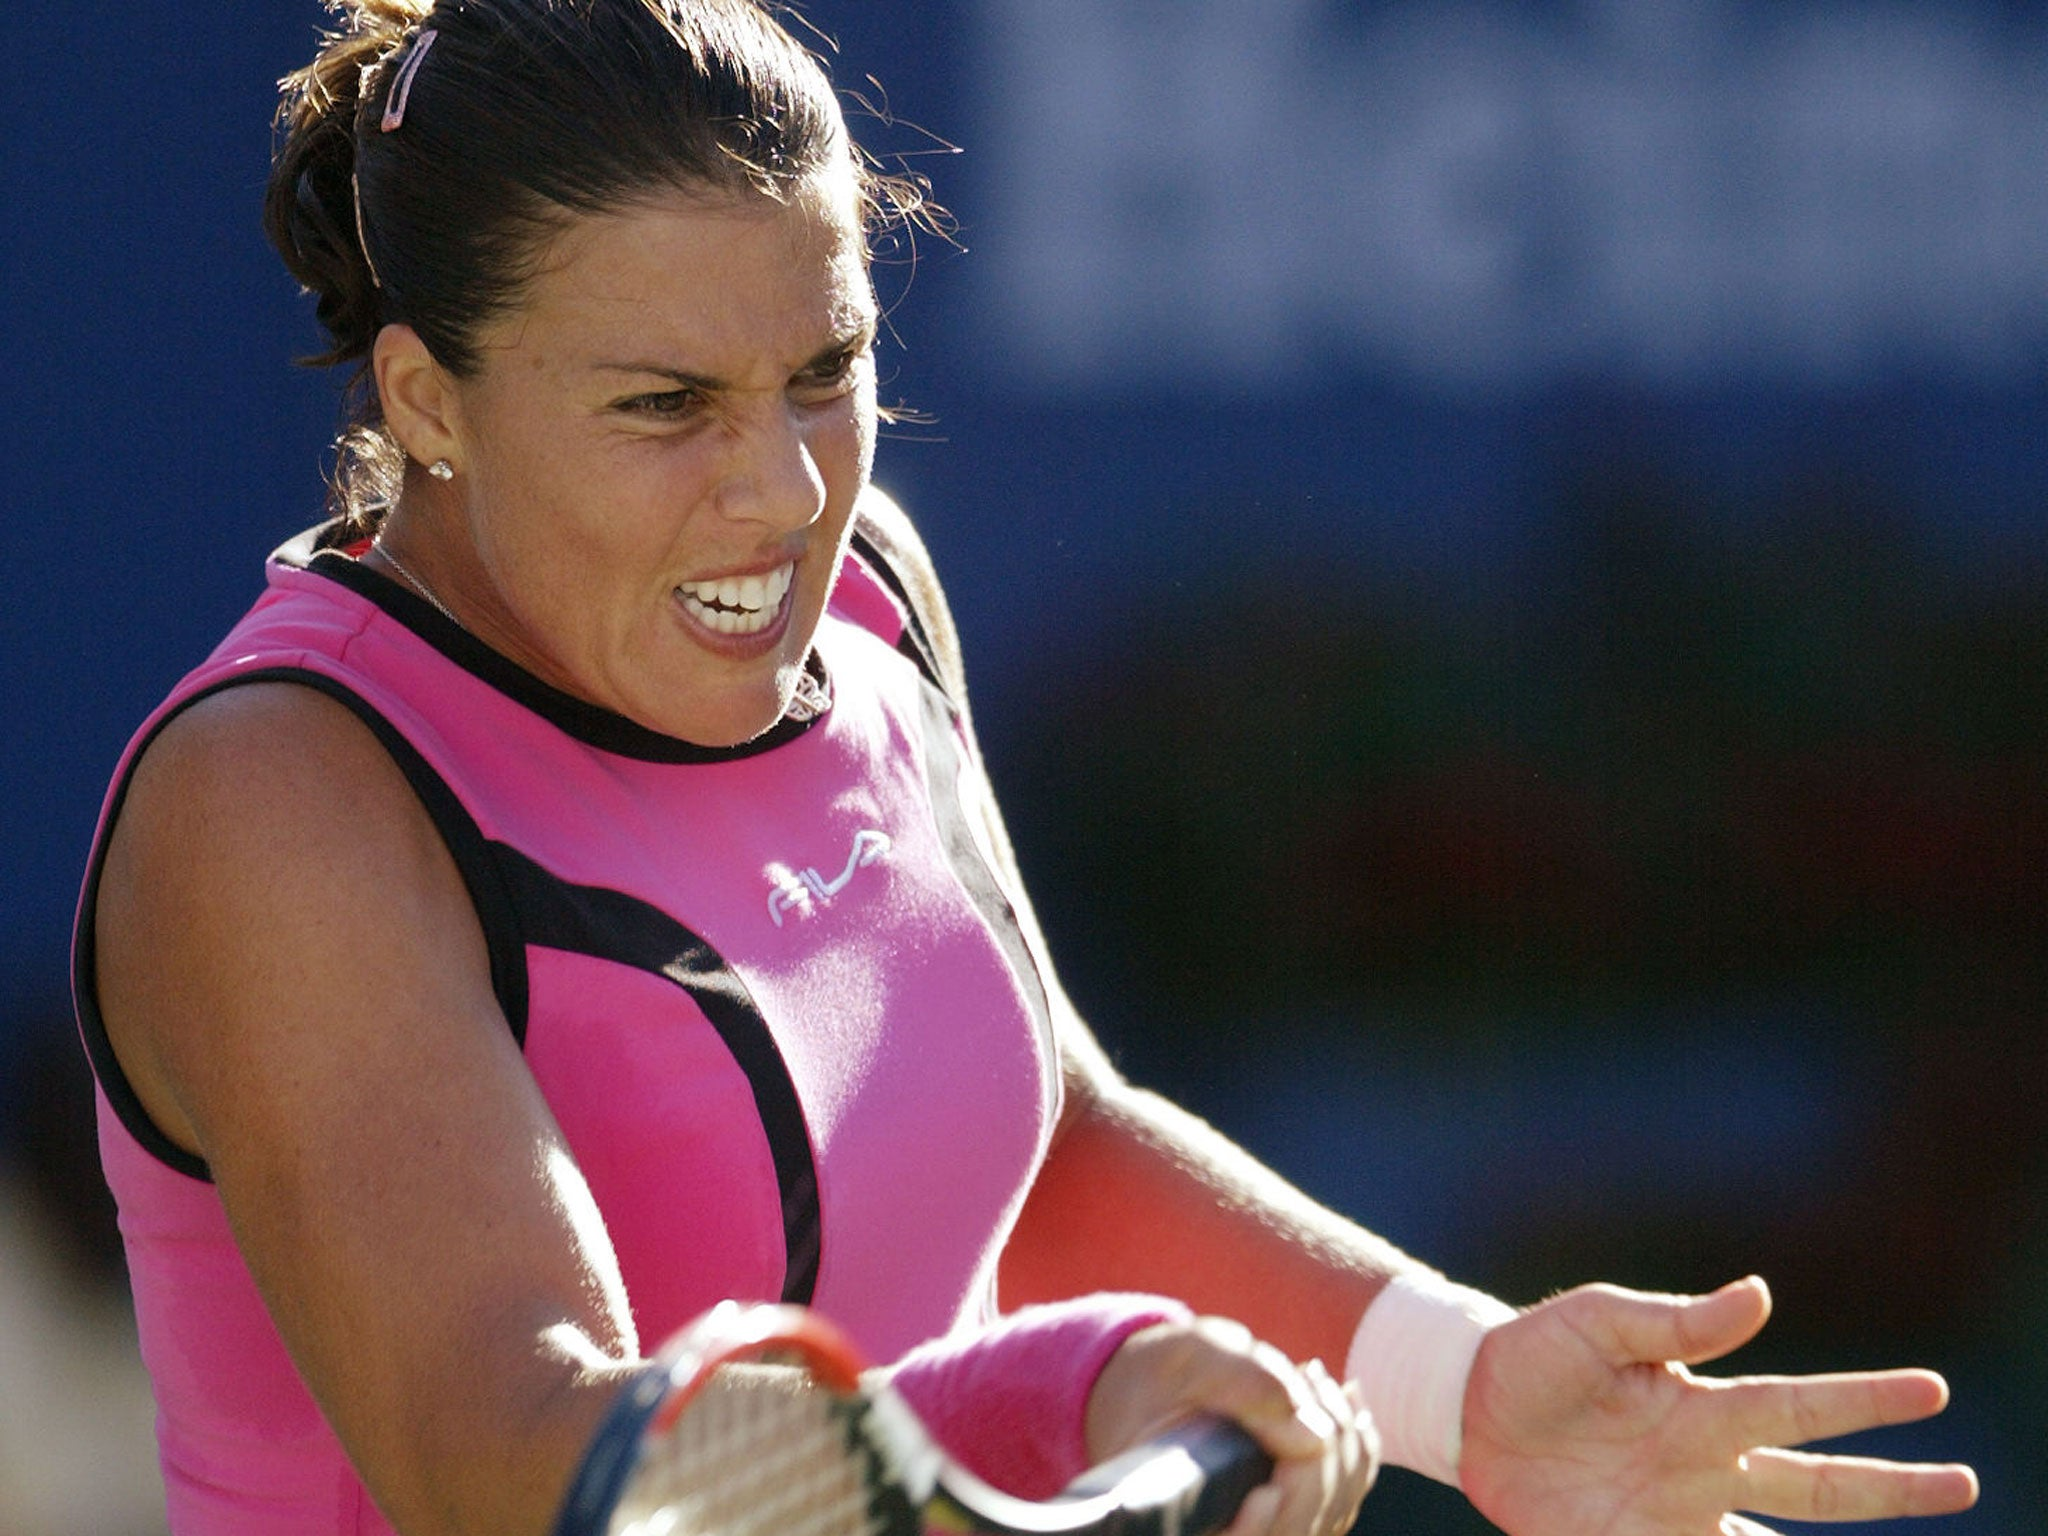 Former tennis star Jennifer Capriati charged after allegedly